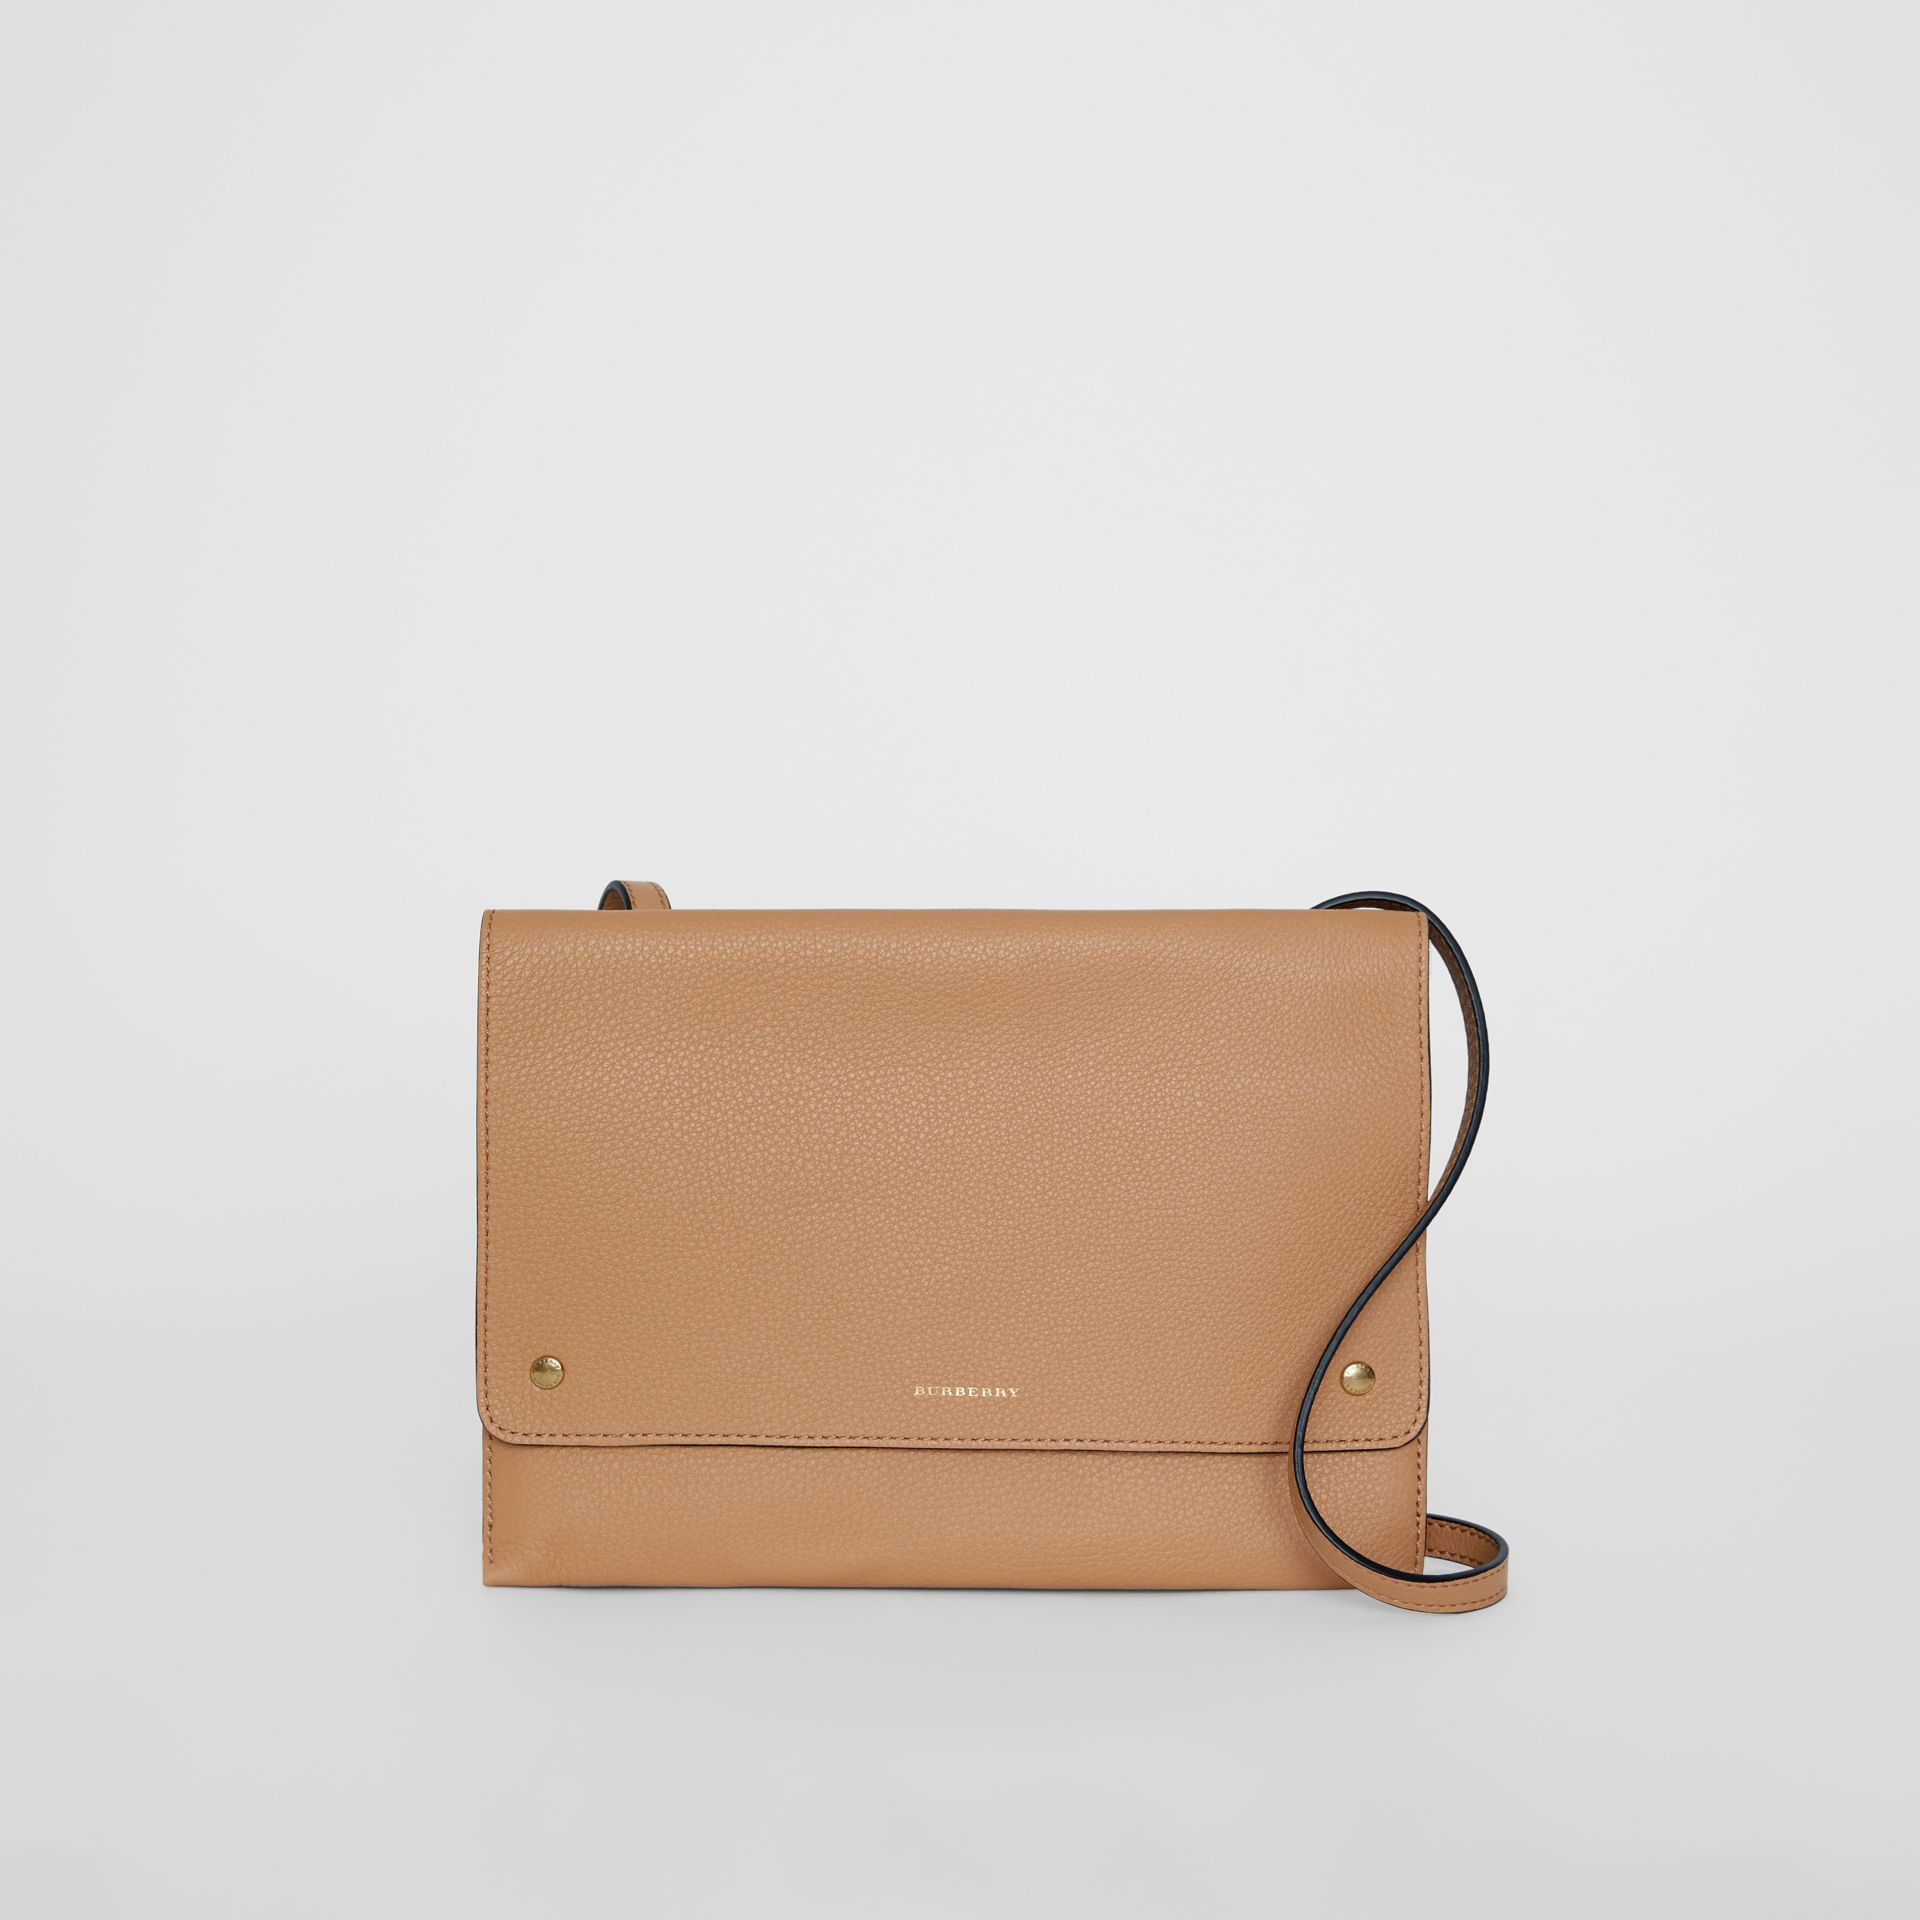 Leather Pouch with Detachable Strap in Light Camel - Women | Burberry - gallery image 0